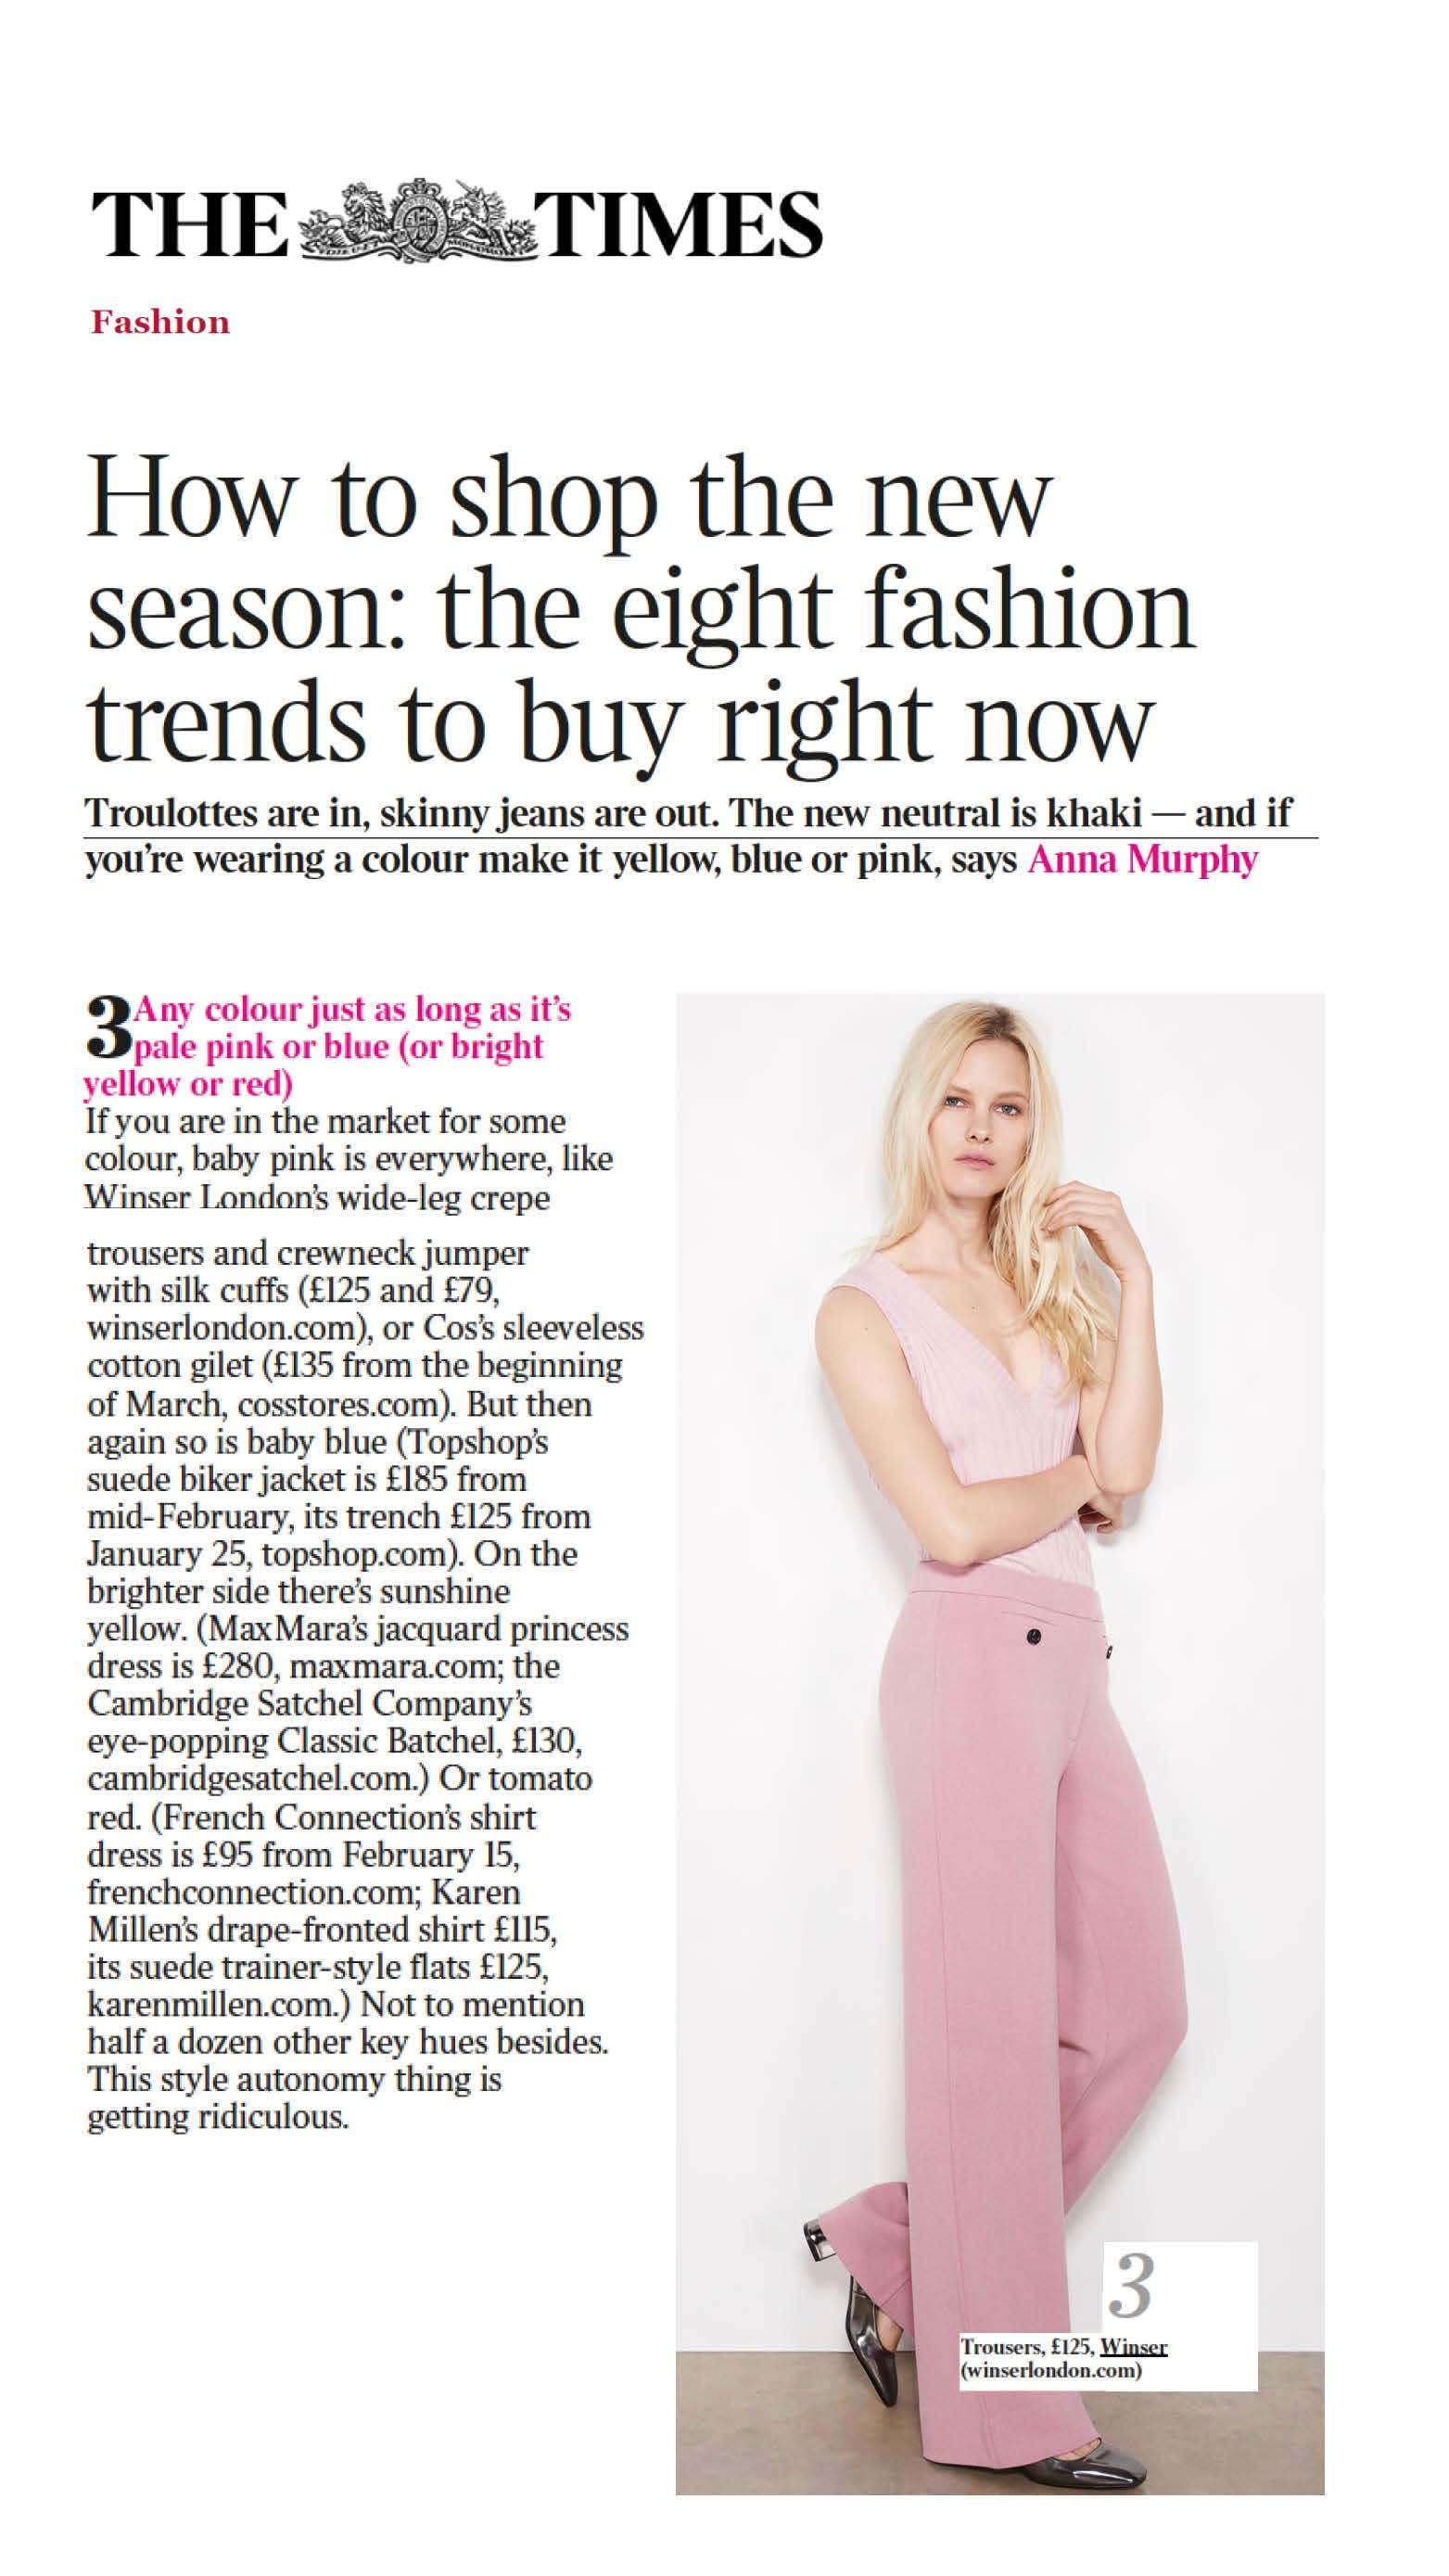 The Times - HOW TO SHOP THE NEW SEASON